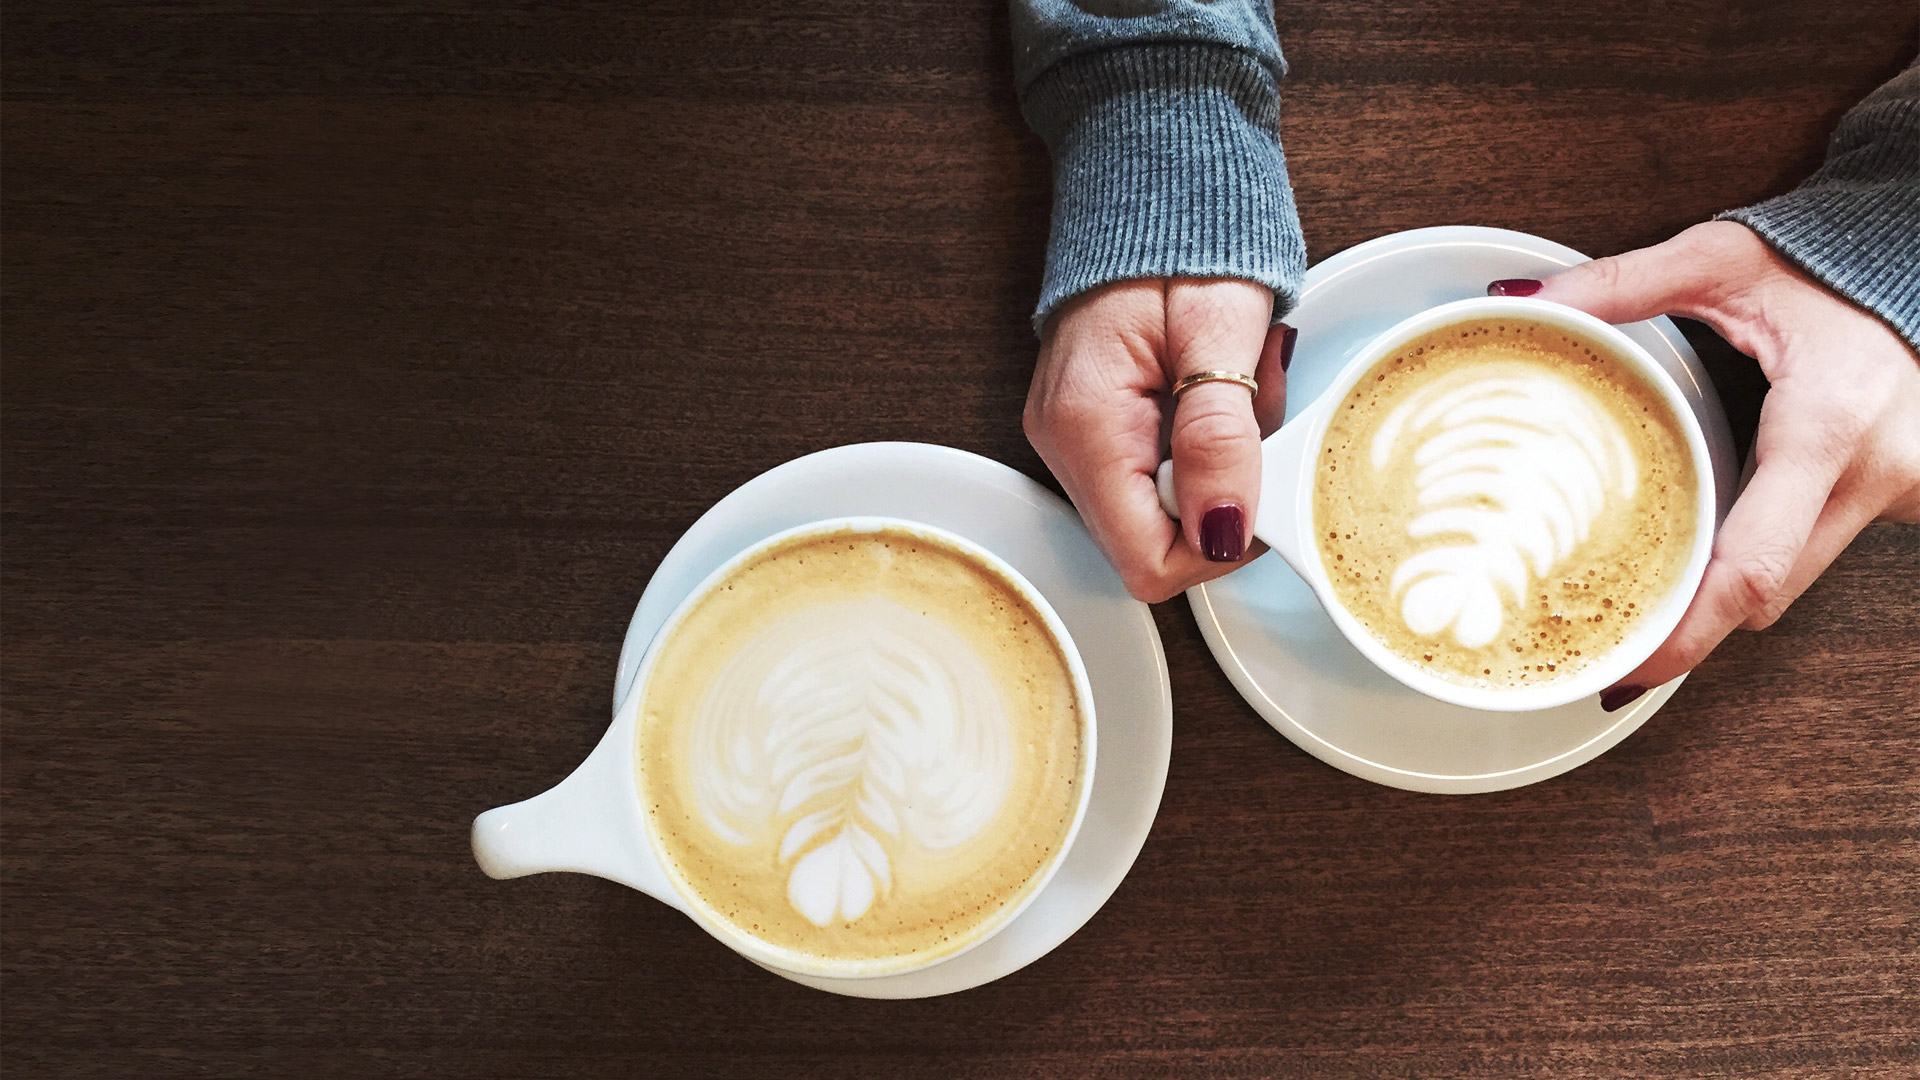 one woman's hands and two coffee cups